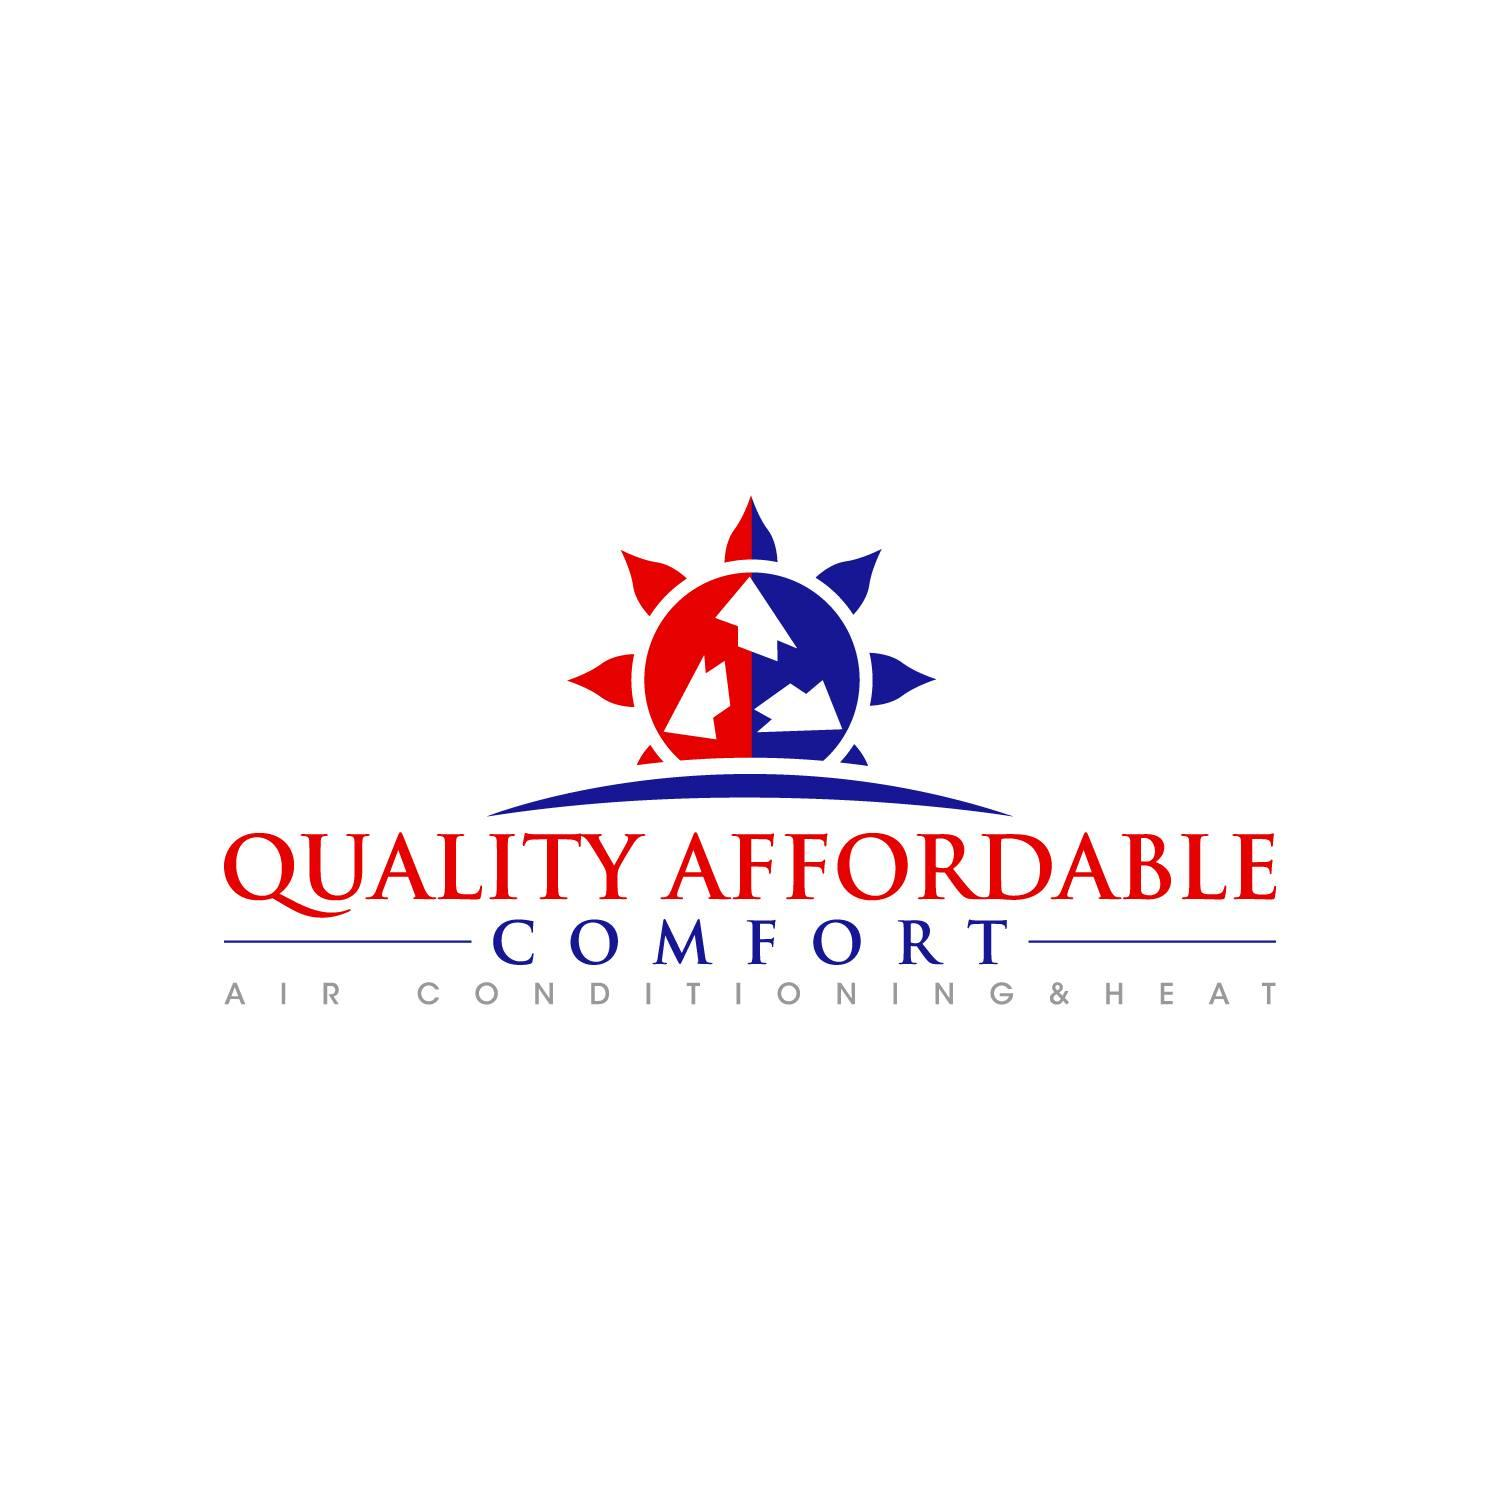 Quality Affordable Comfort Air Conditioning & Heat